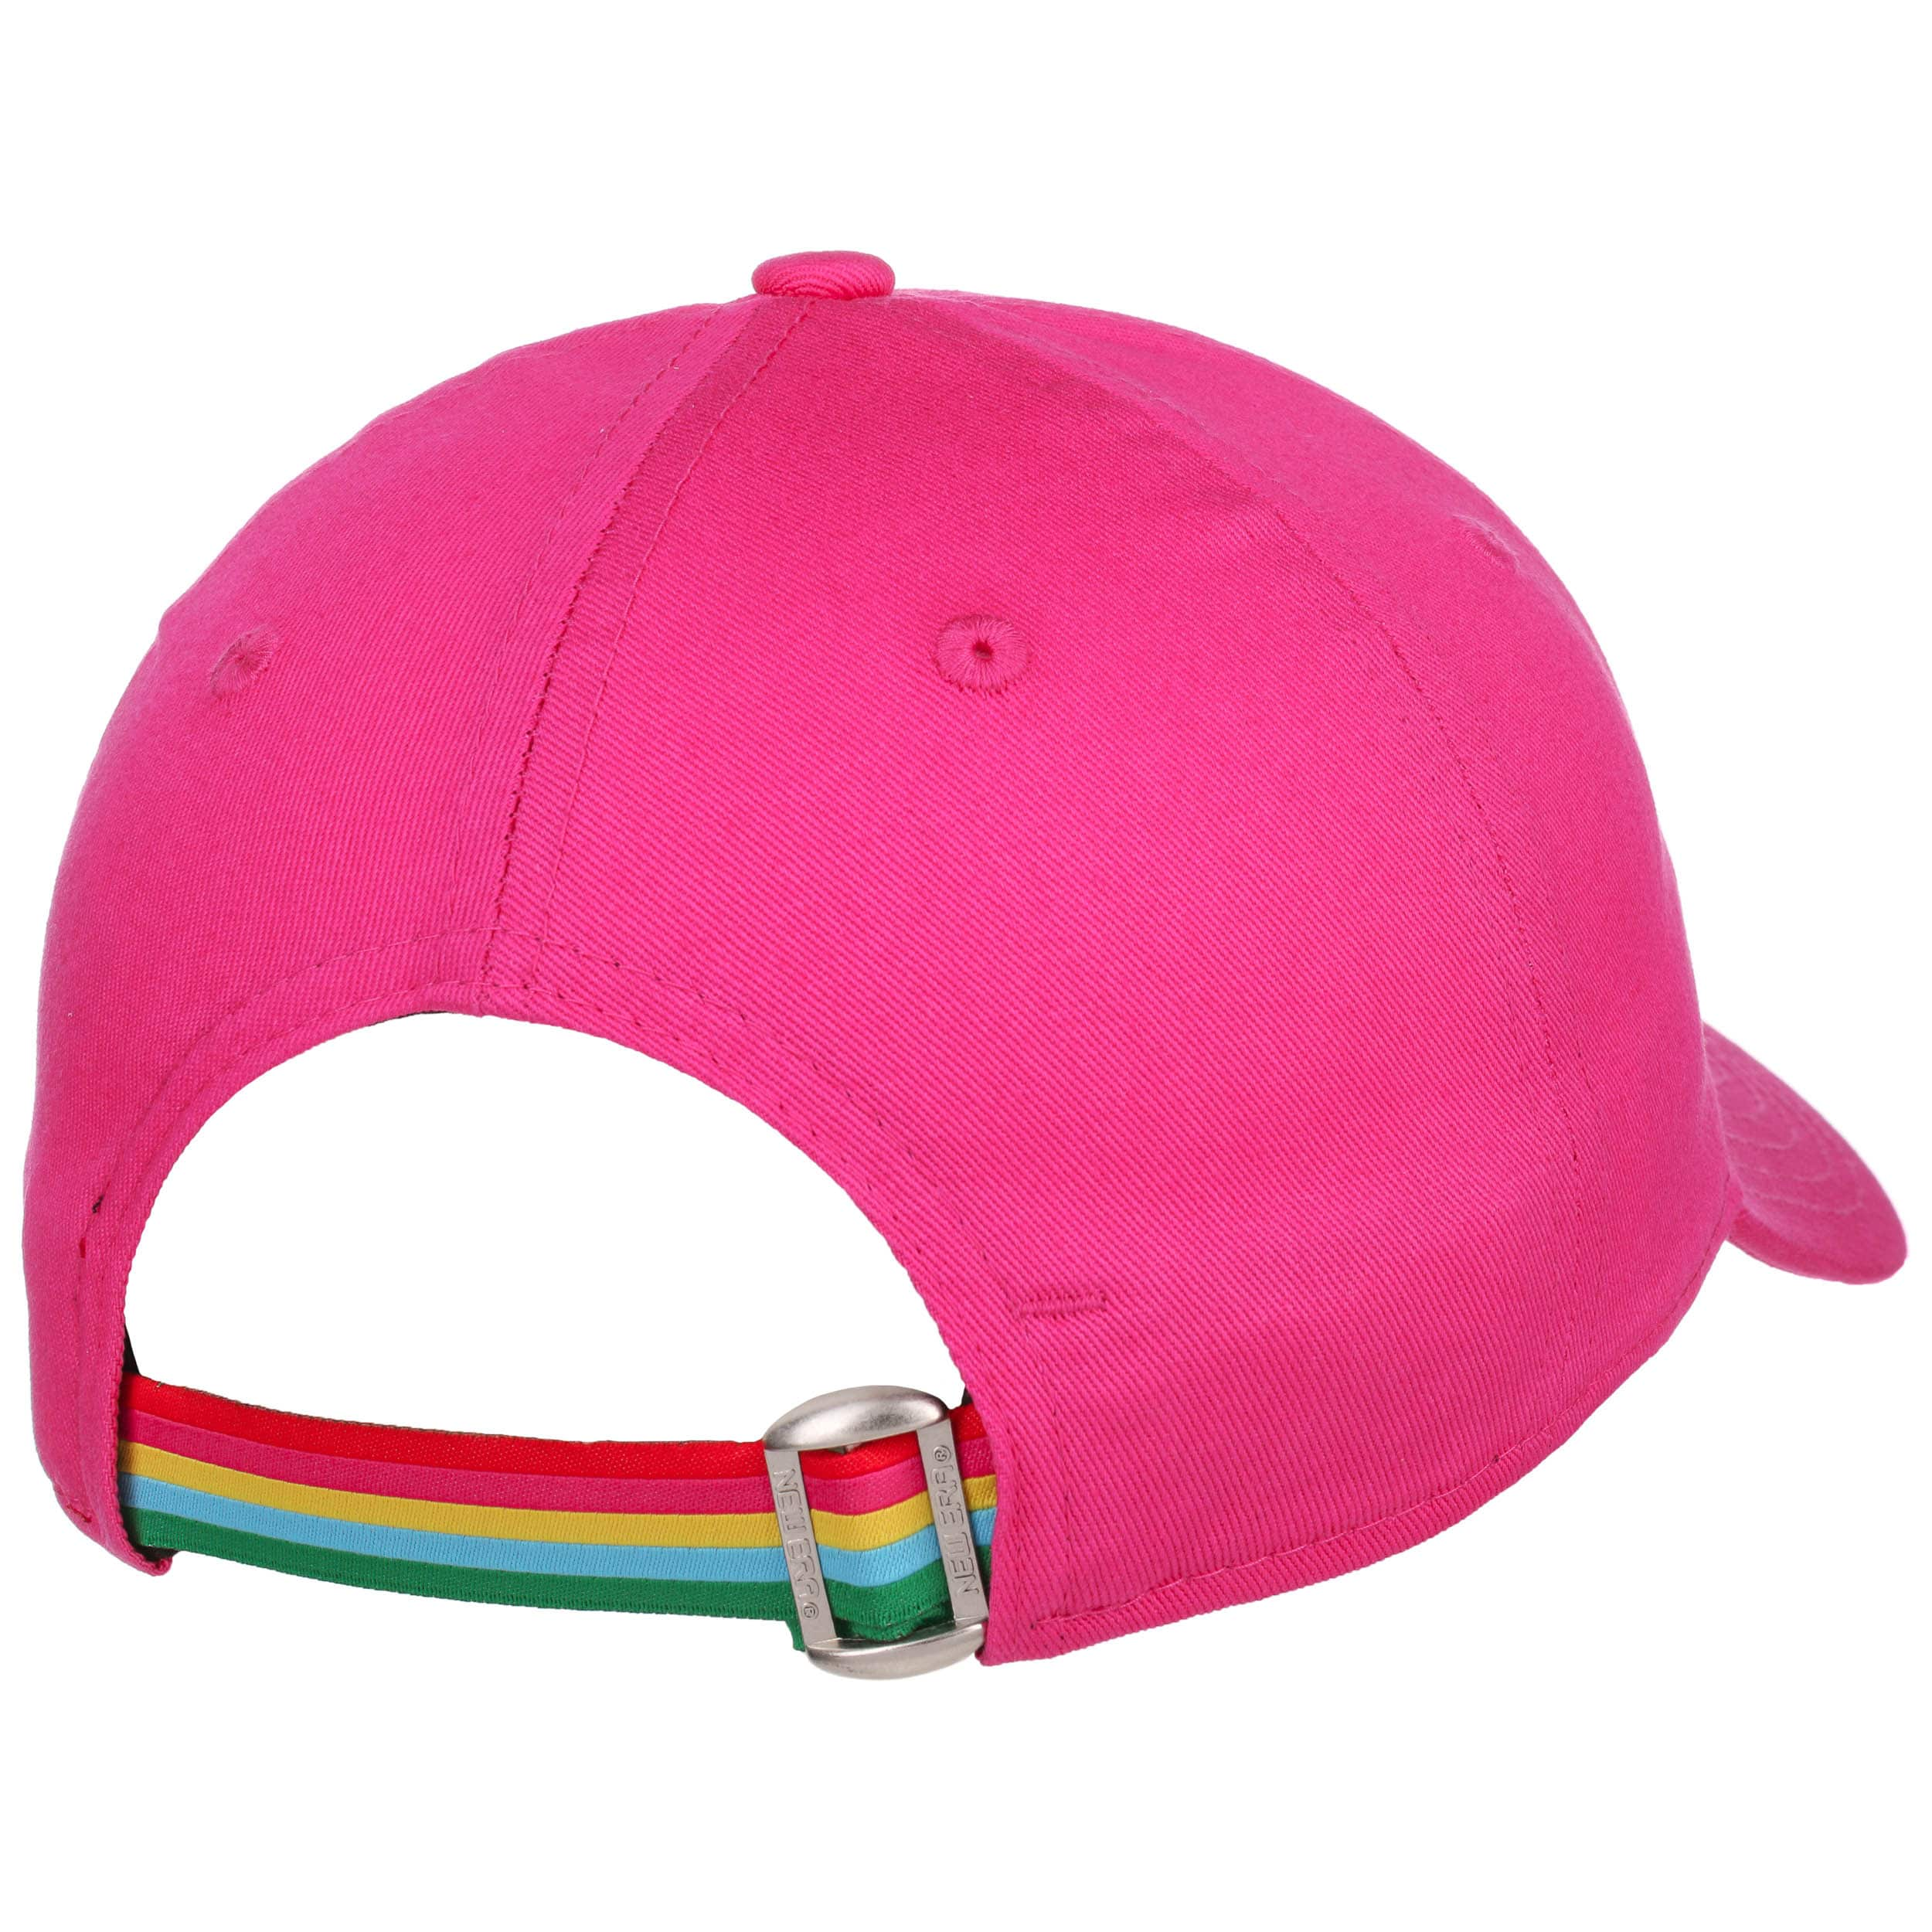 167ee8f431 ... 9Forty Rainbow Hearts Yankees Cap by New Era - pink 1 ...